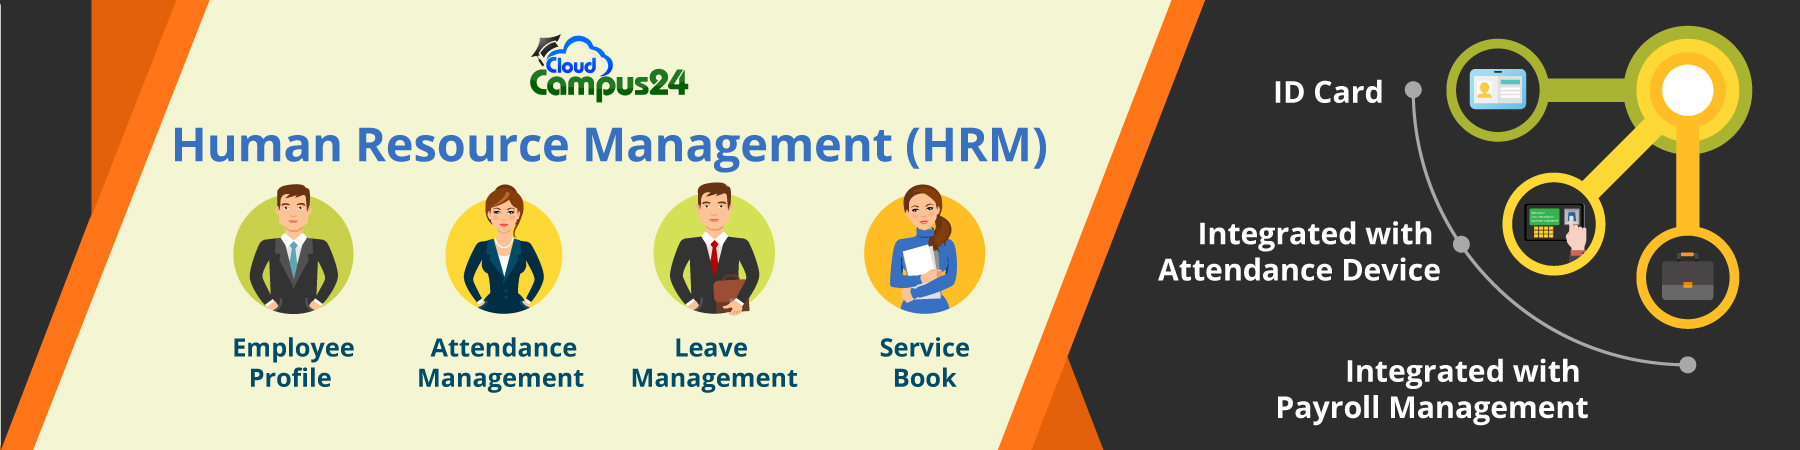 Human Resource Managment (HRM)